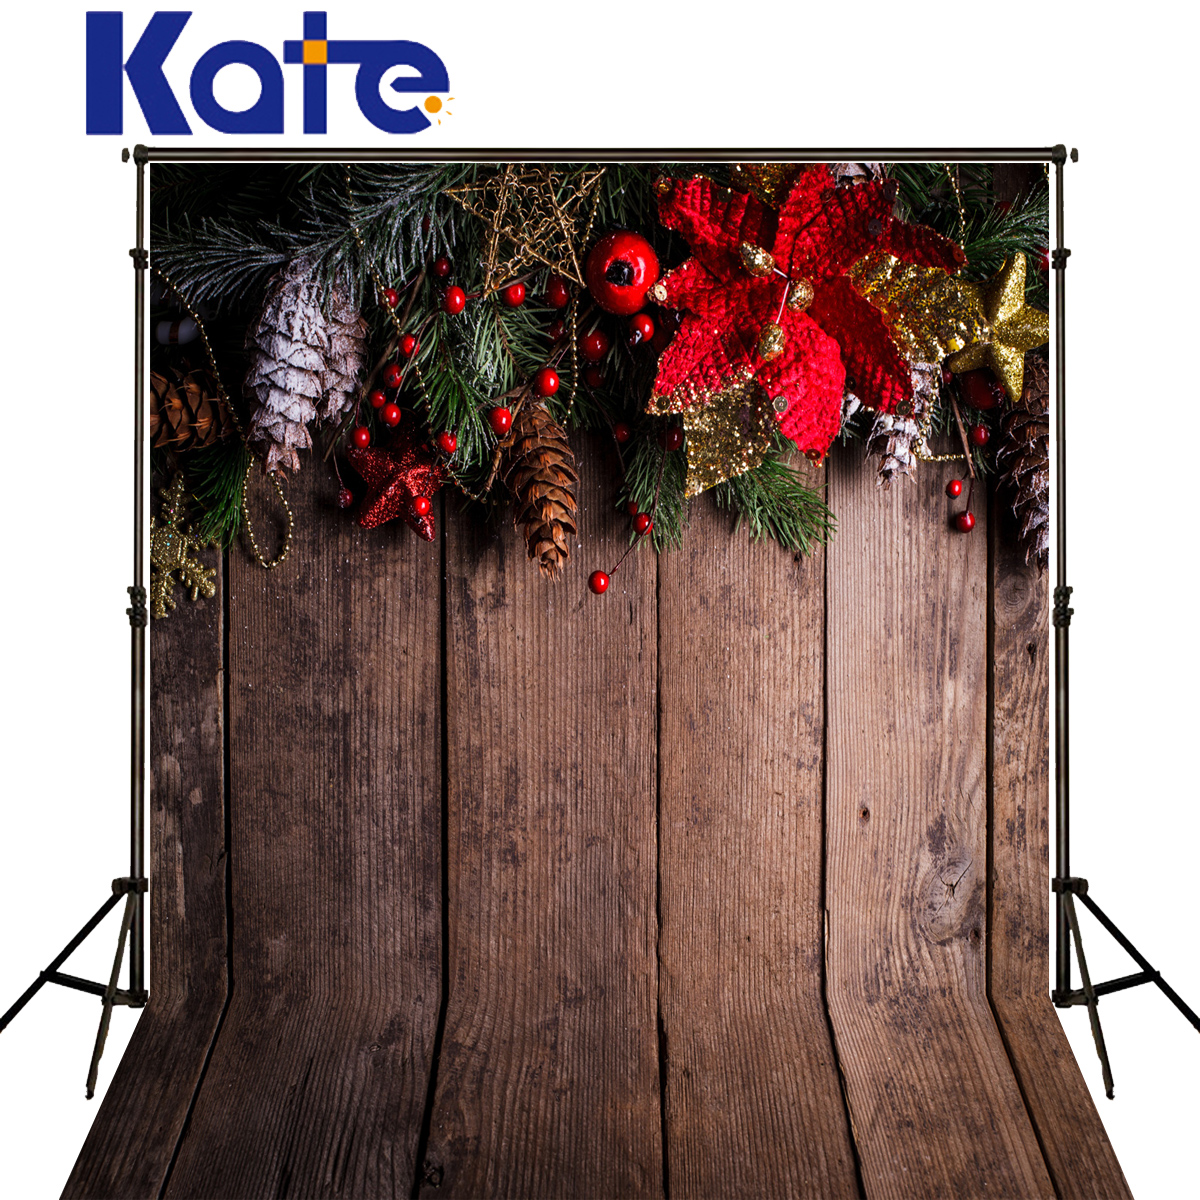 KATE Photo Background Christmas Photography Backdrops Wooden Plank Backdrop Red Floral Backdrops Vintage Background for Studio